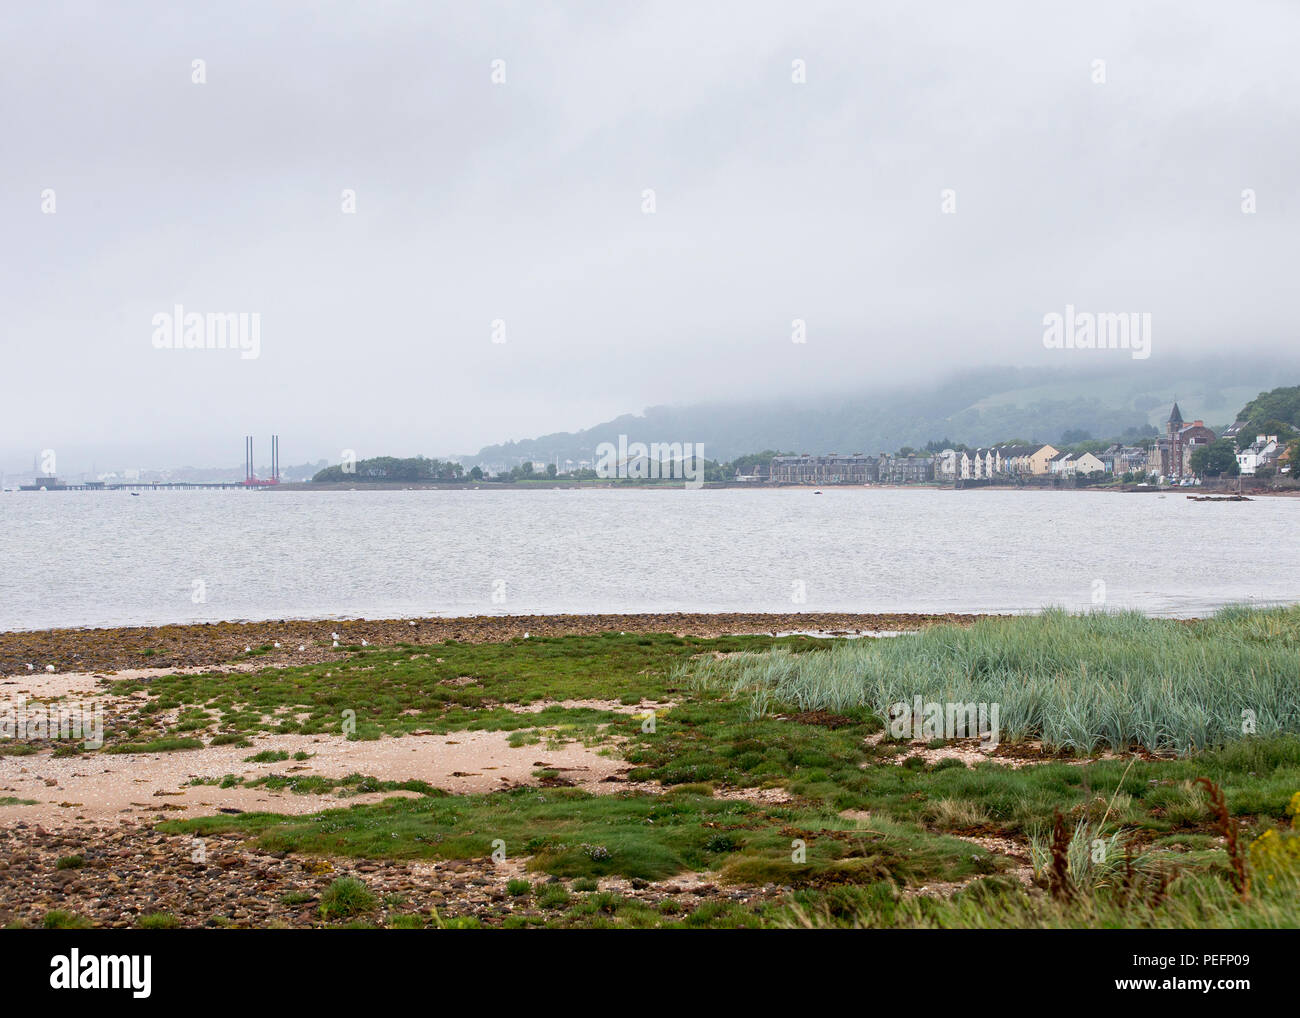 Town of Fairlie, North Ayrshire - Stock Image